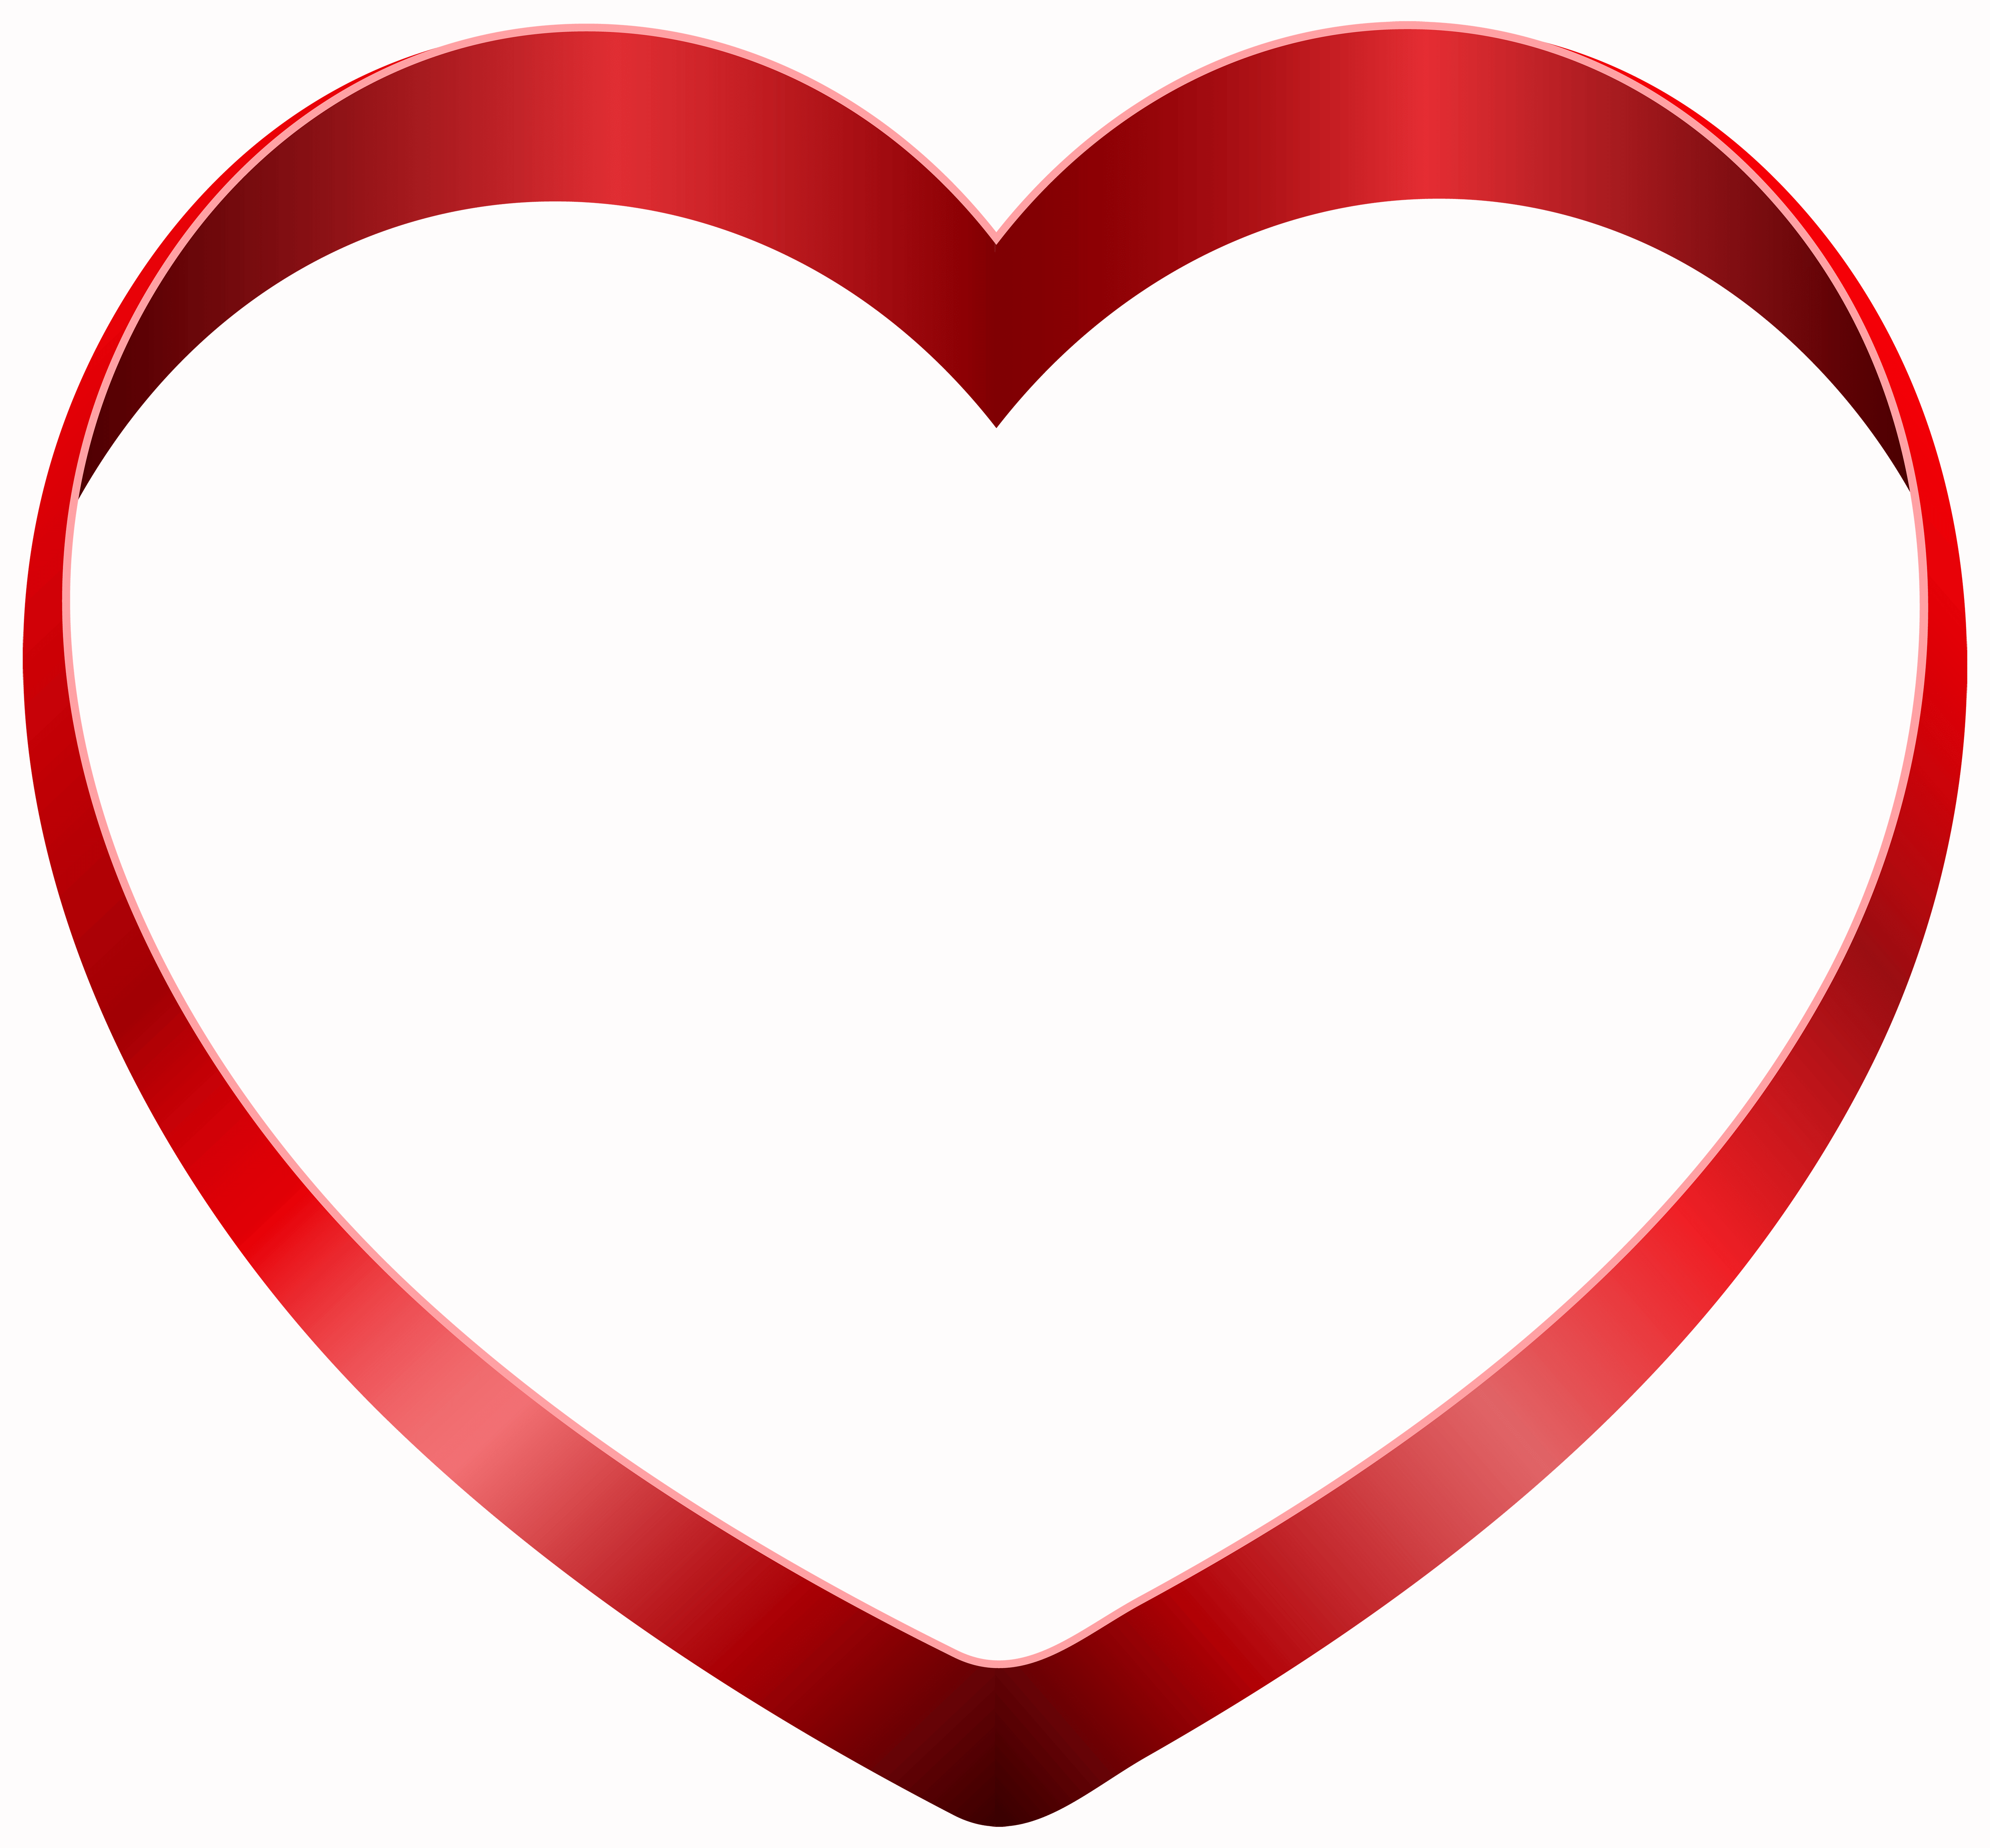 Transparent Heart PNG Clipart